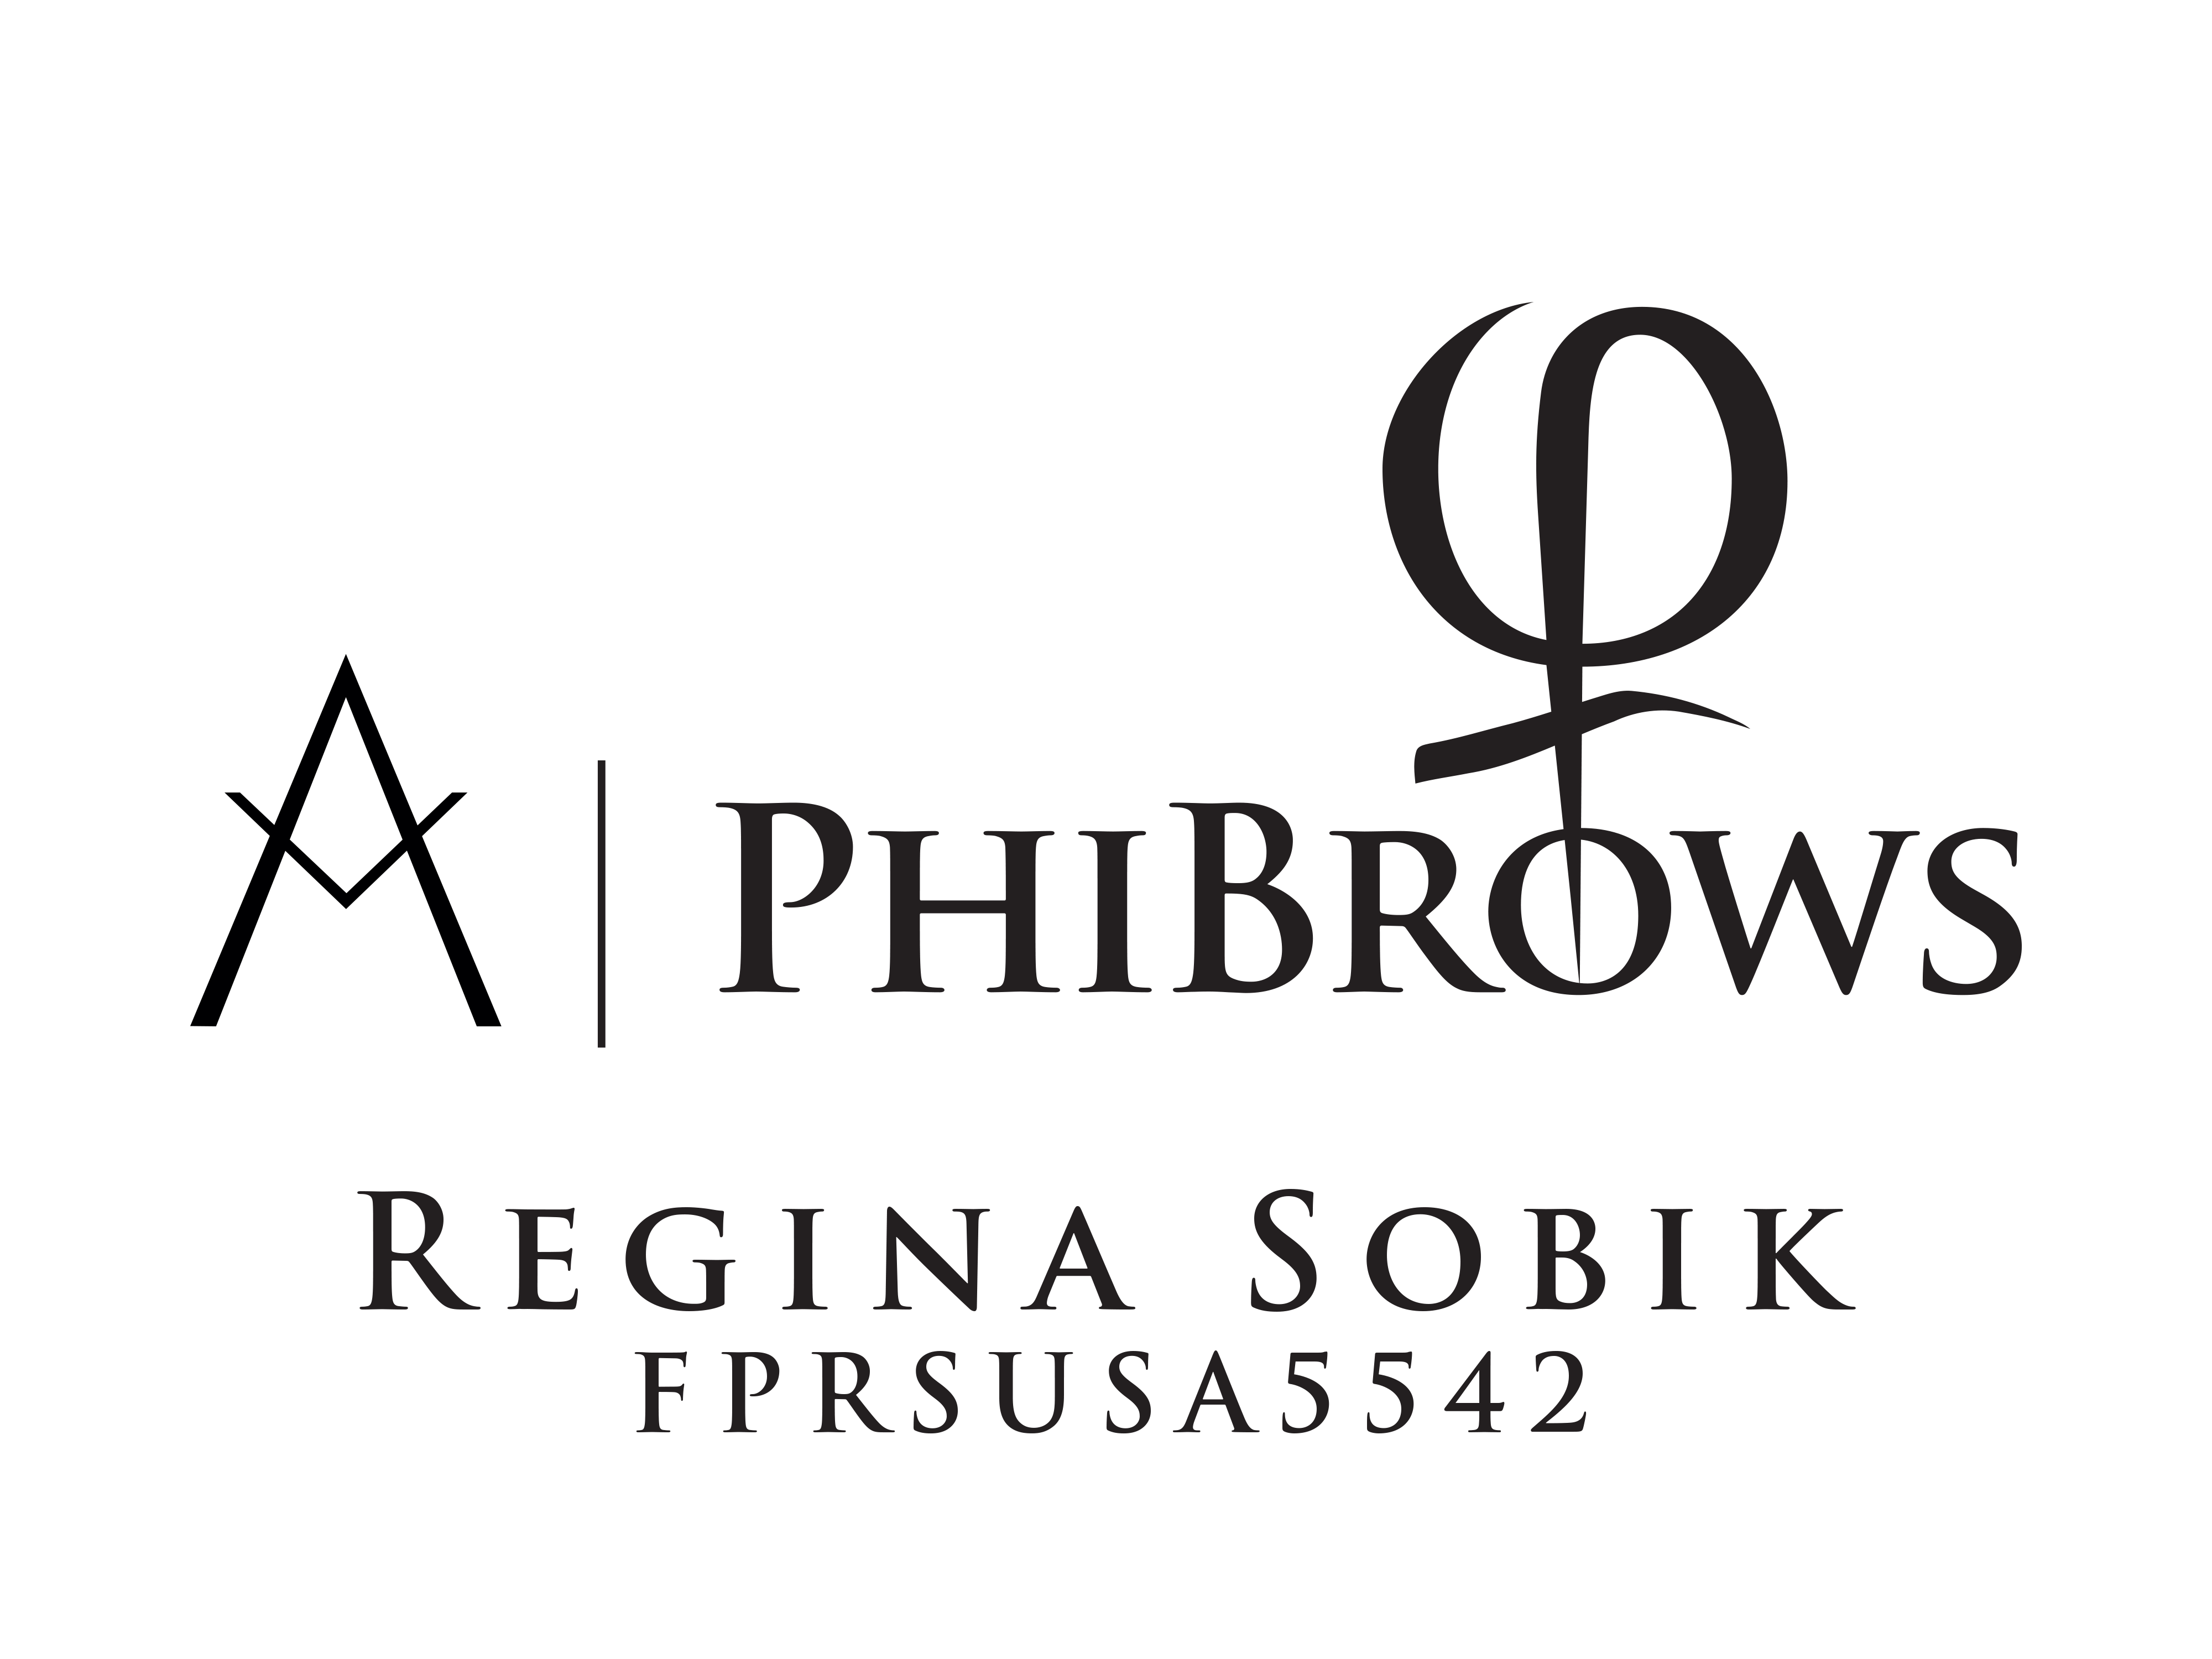 Regina_Phibrows_logo